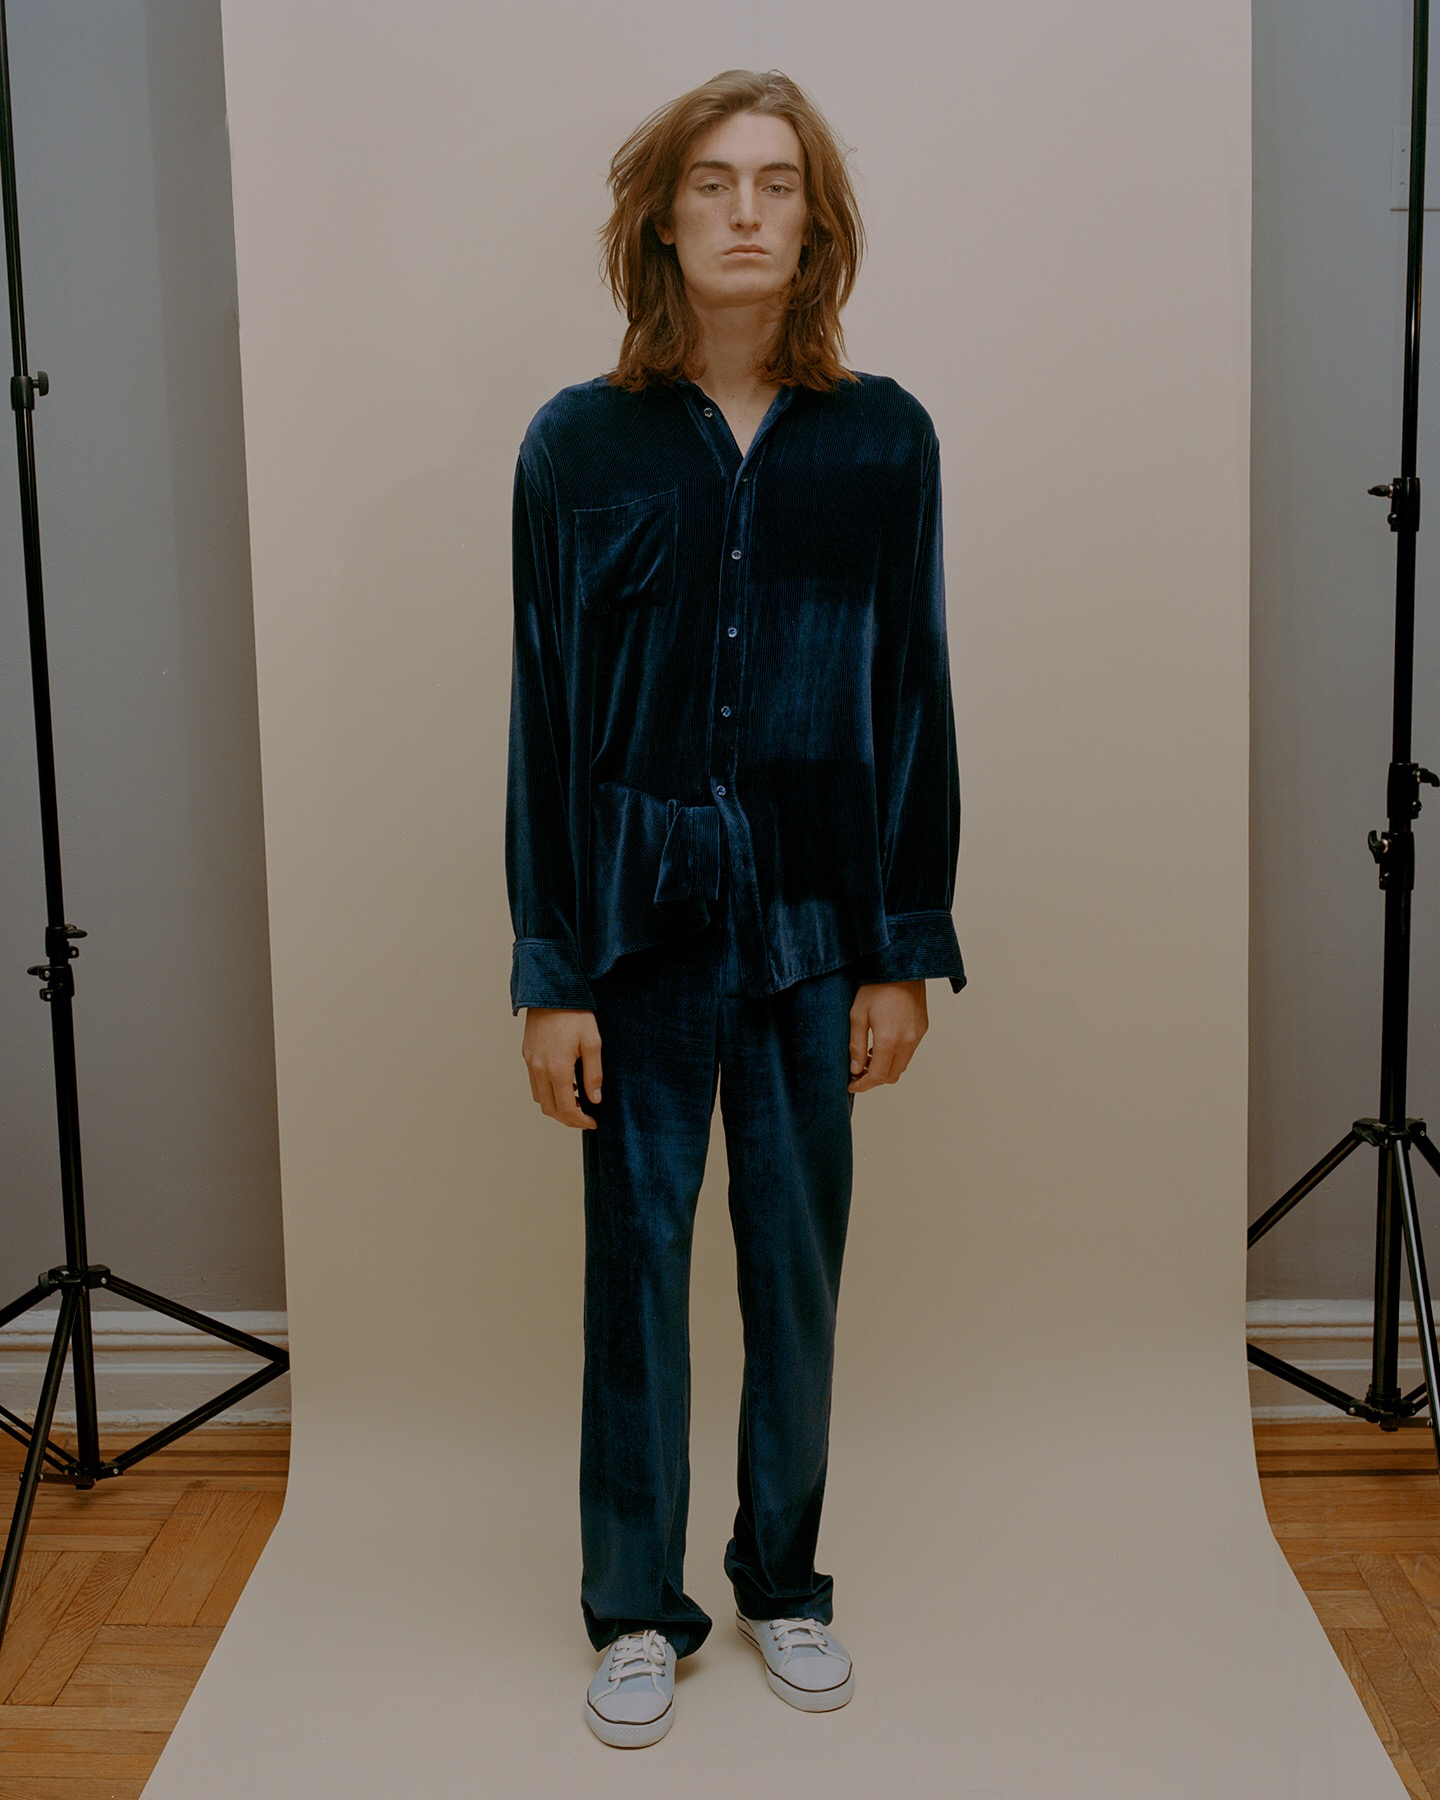 Sies-Marjan-mens-capsule-collection-the-impression-04